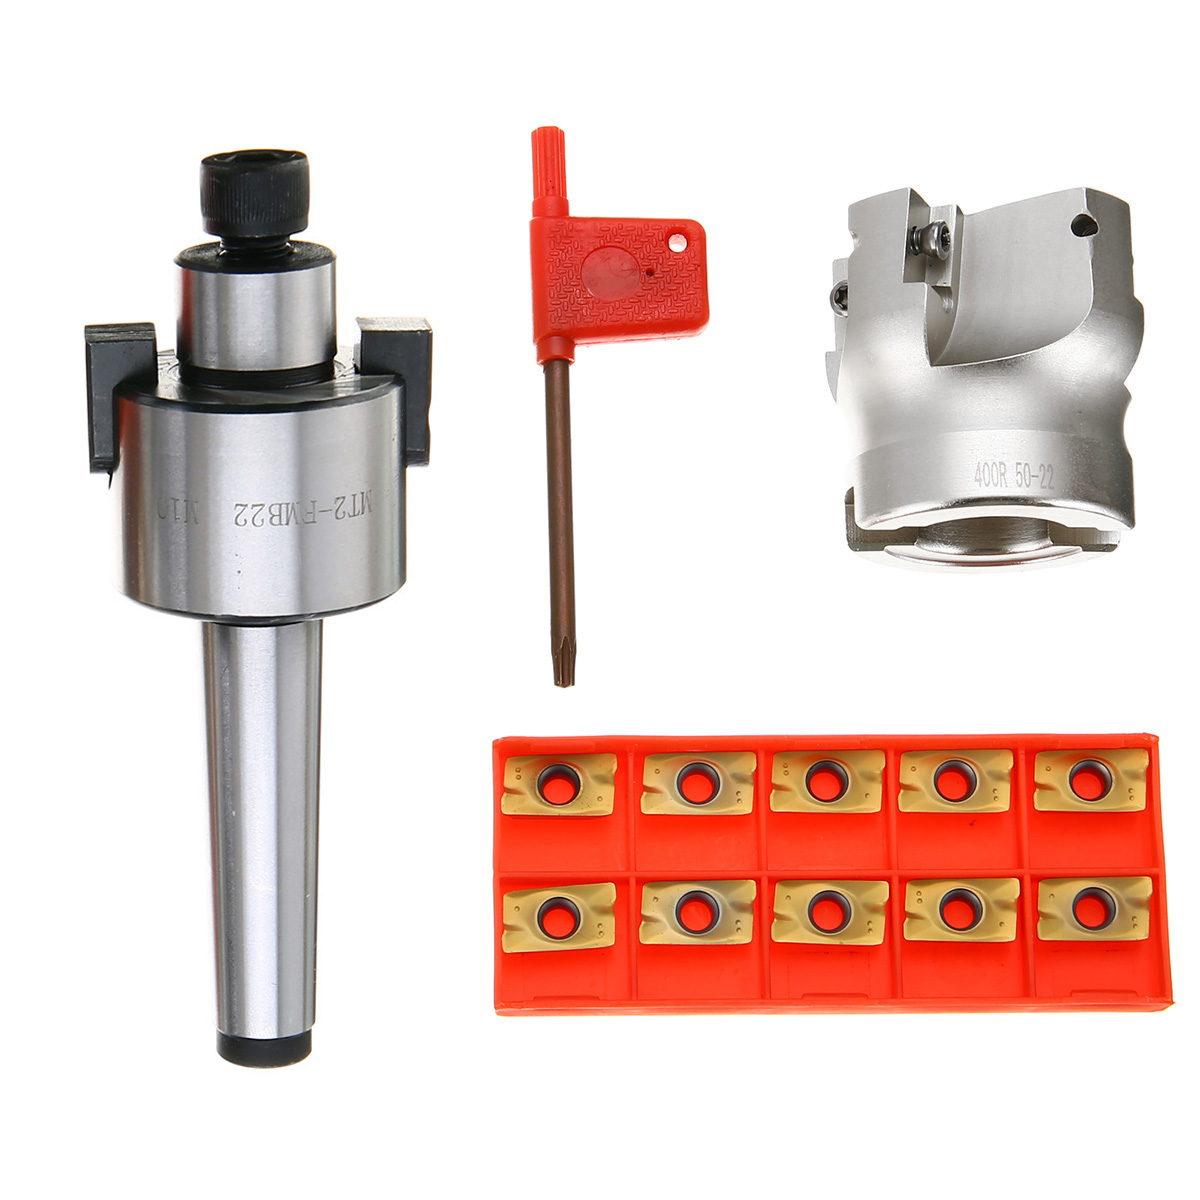 High Quality MT2 400R Face End Mill Cutter 50mm 10pcs APMT1604 Carbide Inserts With Wrench For